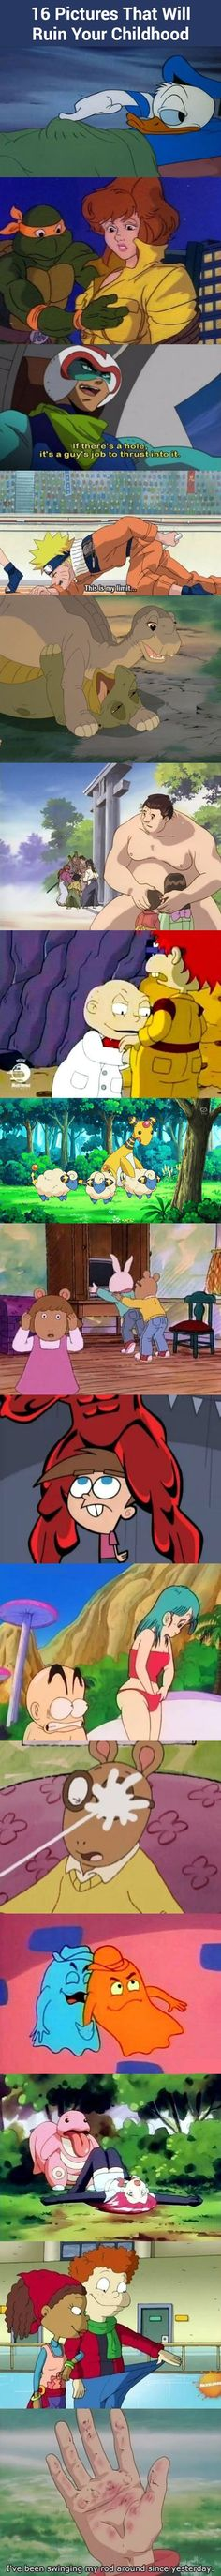 16 Pictures that will ruin your childhood